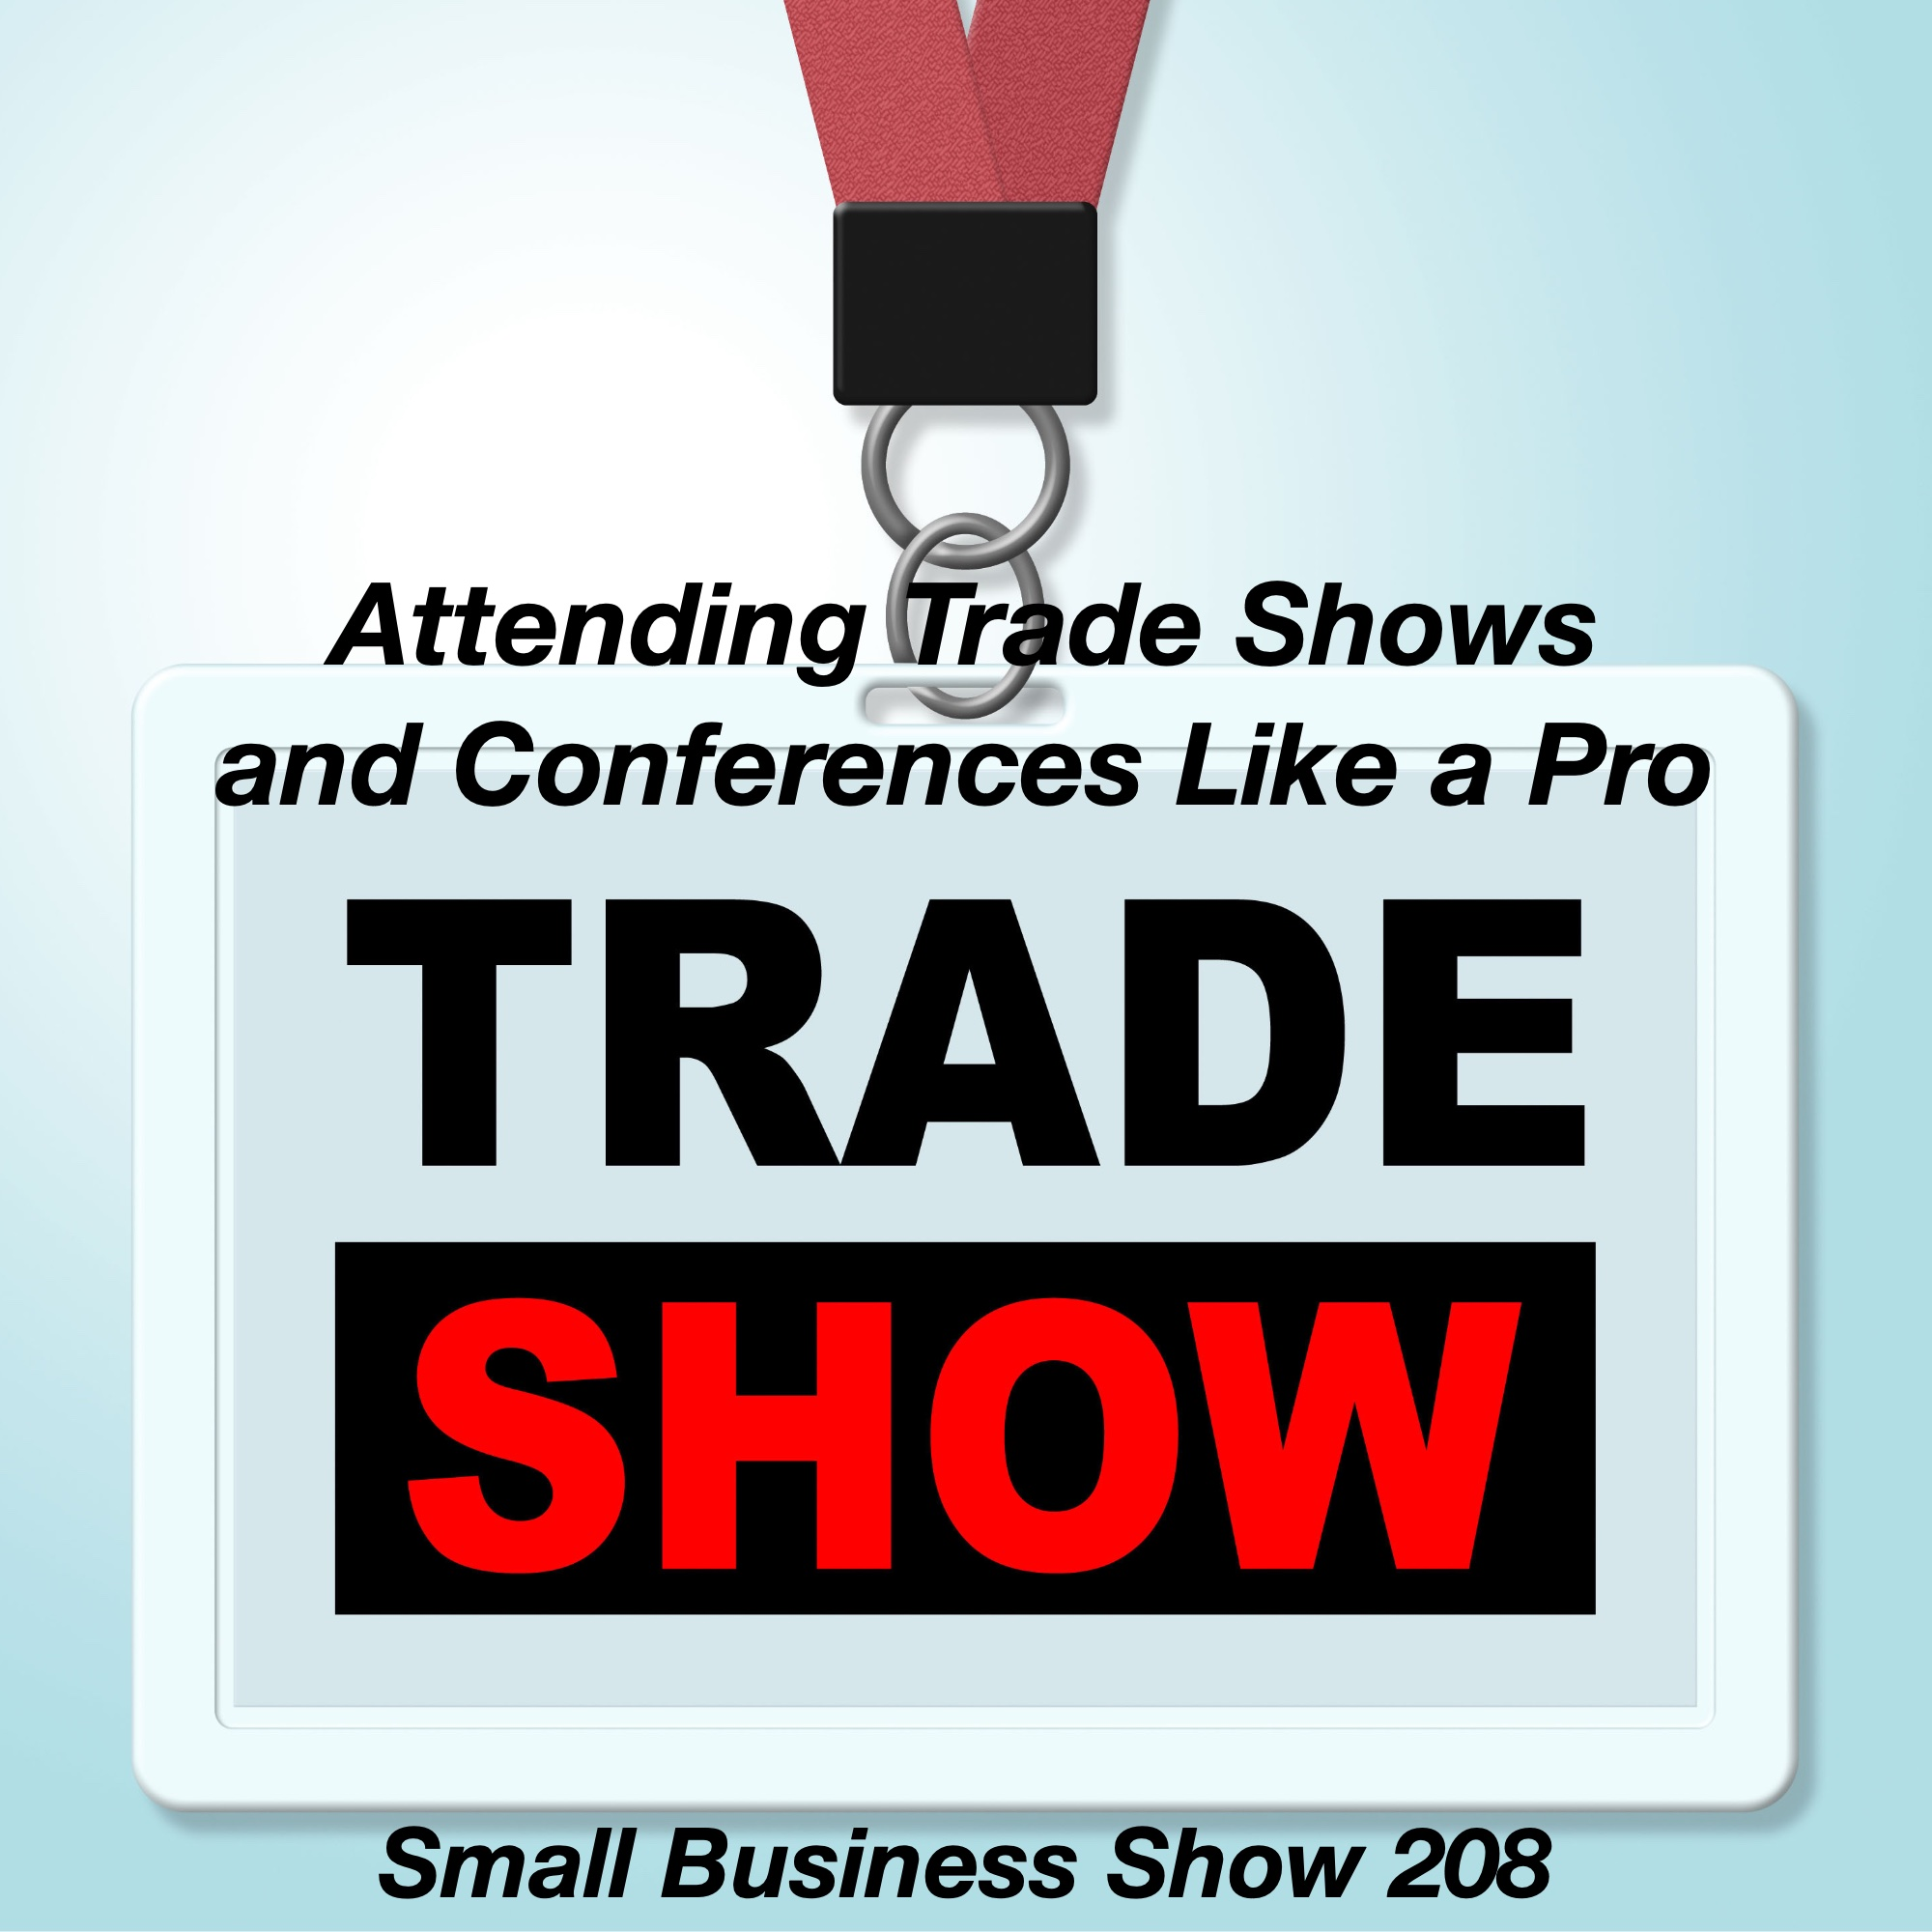 trade-shows-episode-208 - The Small Business Show